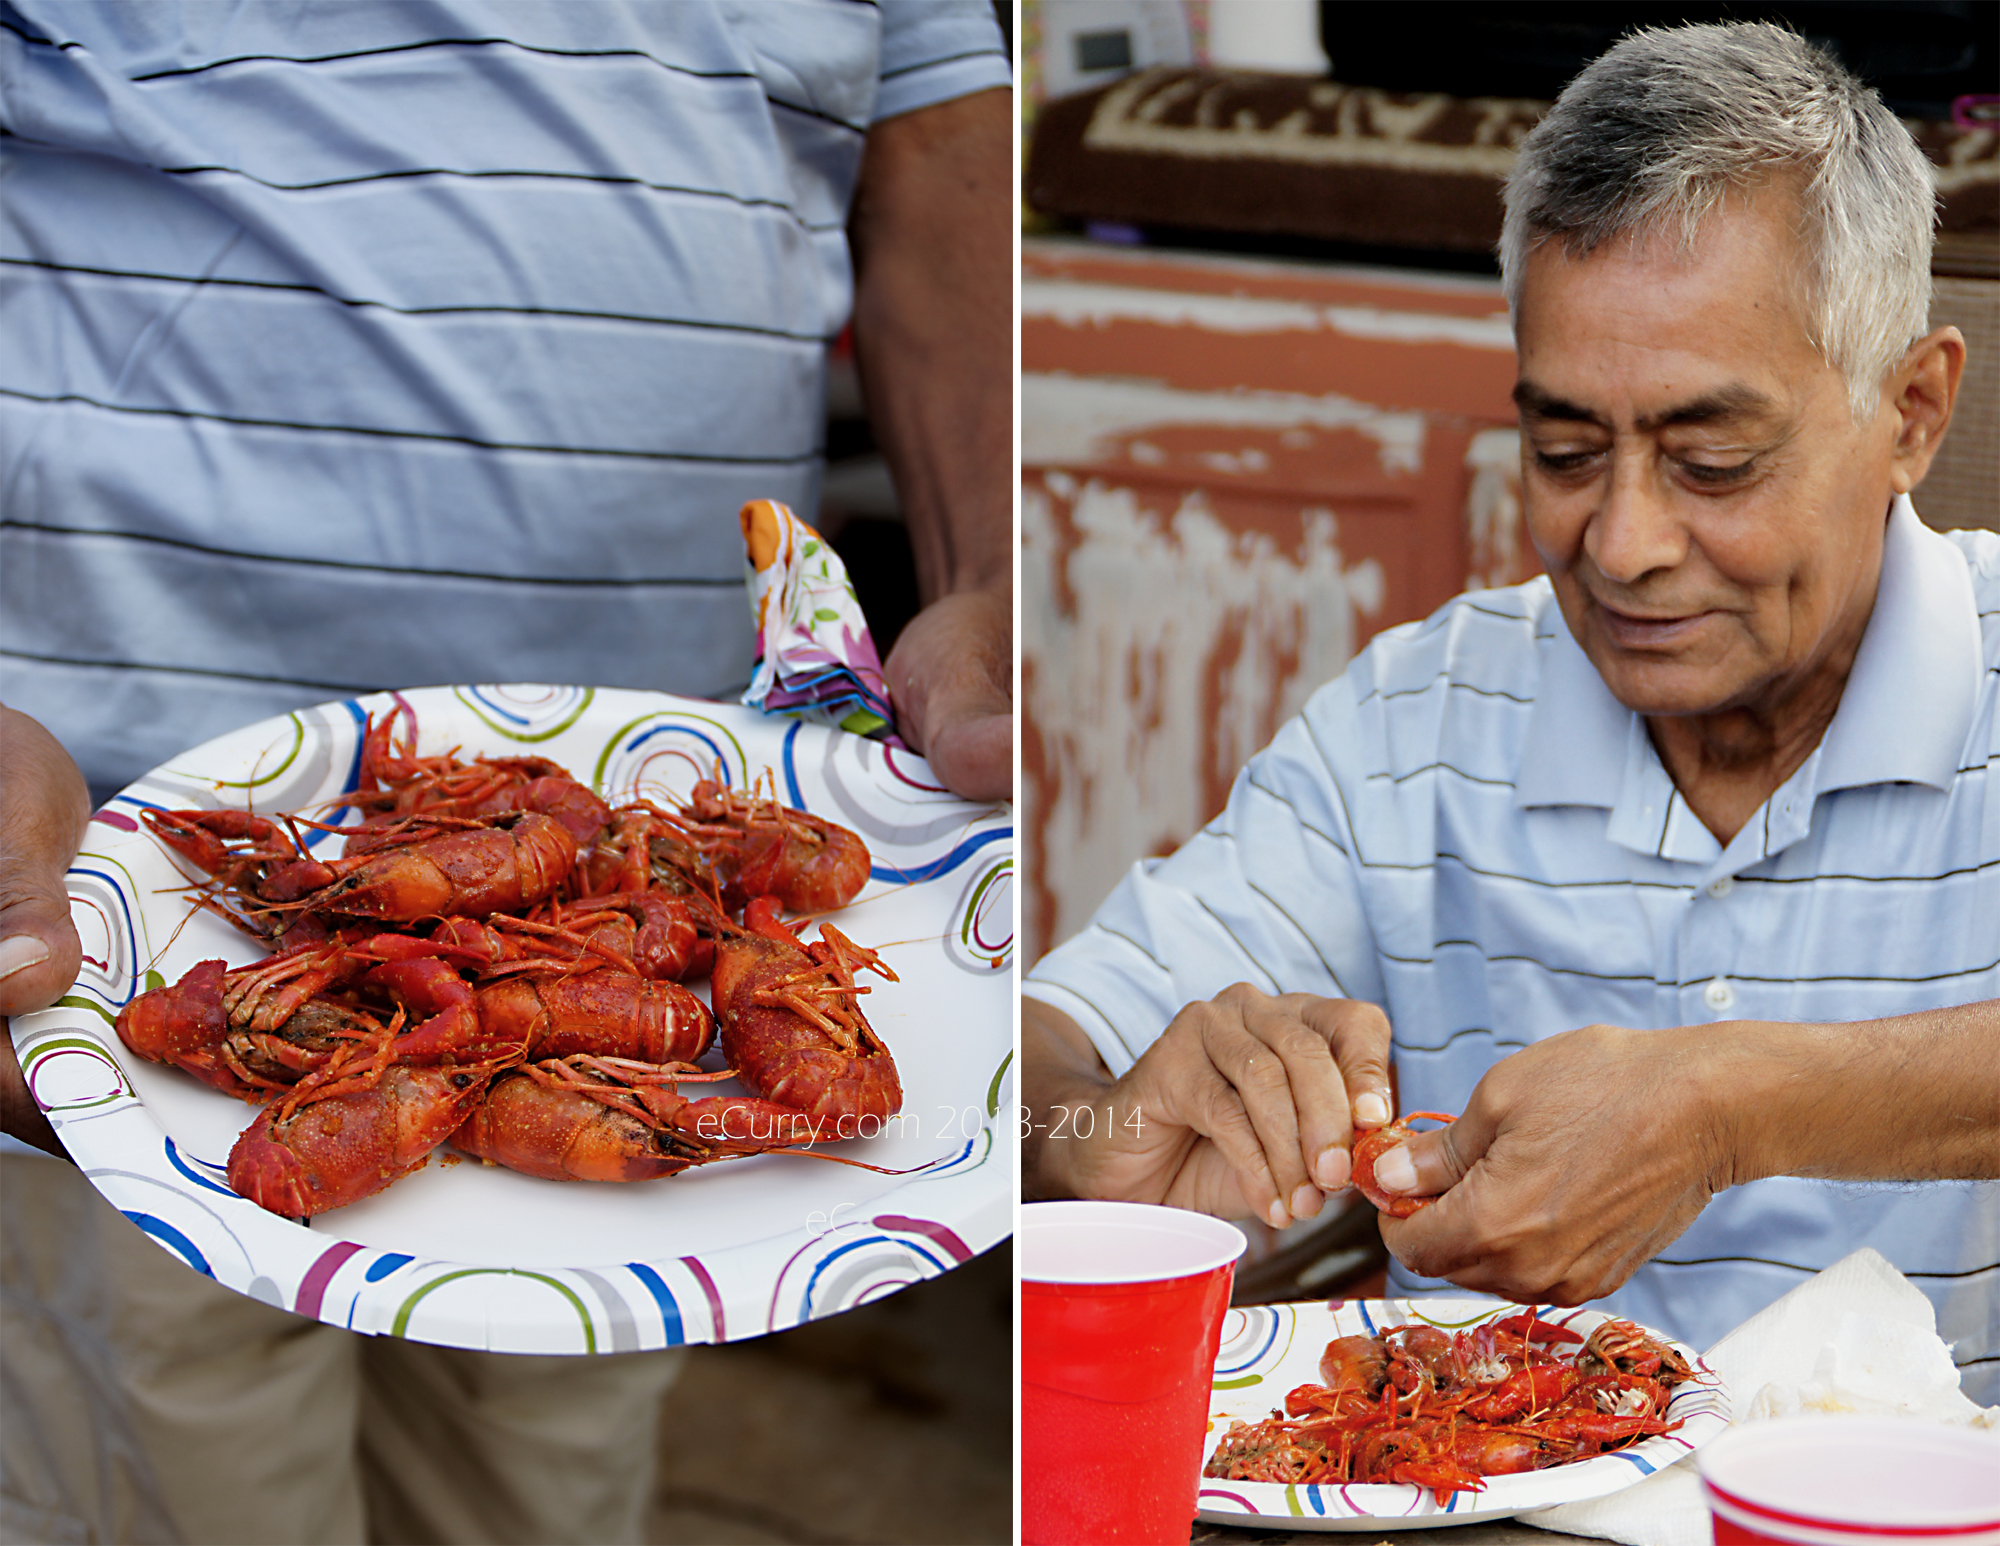 Crawfish Boil Diptych 2